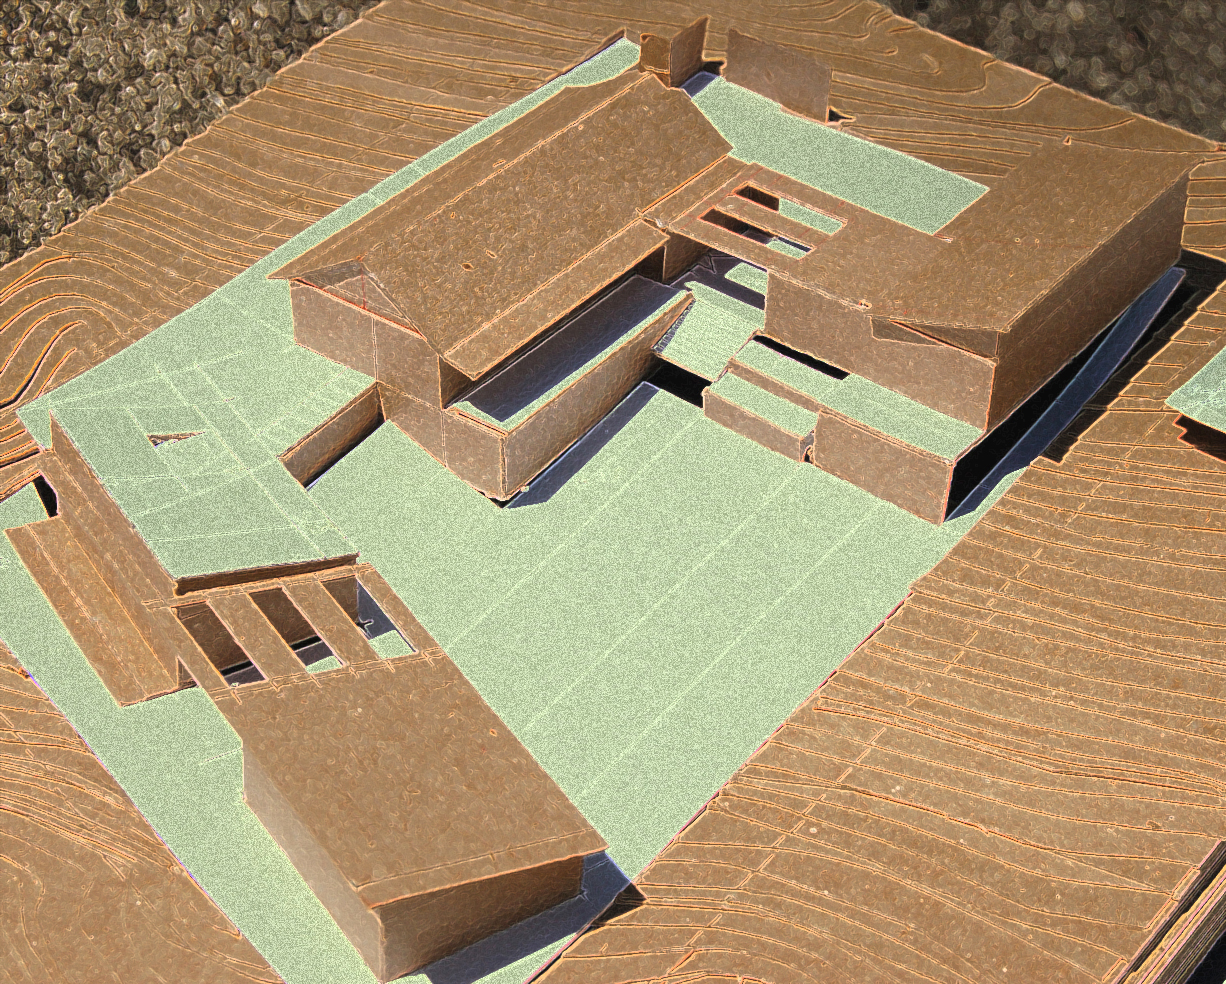 stylized model view showing massing of house and reaction to topography